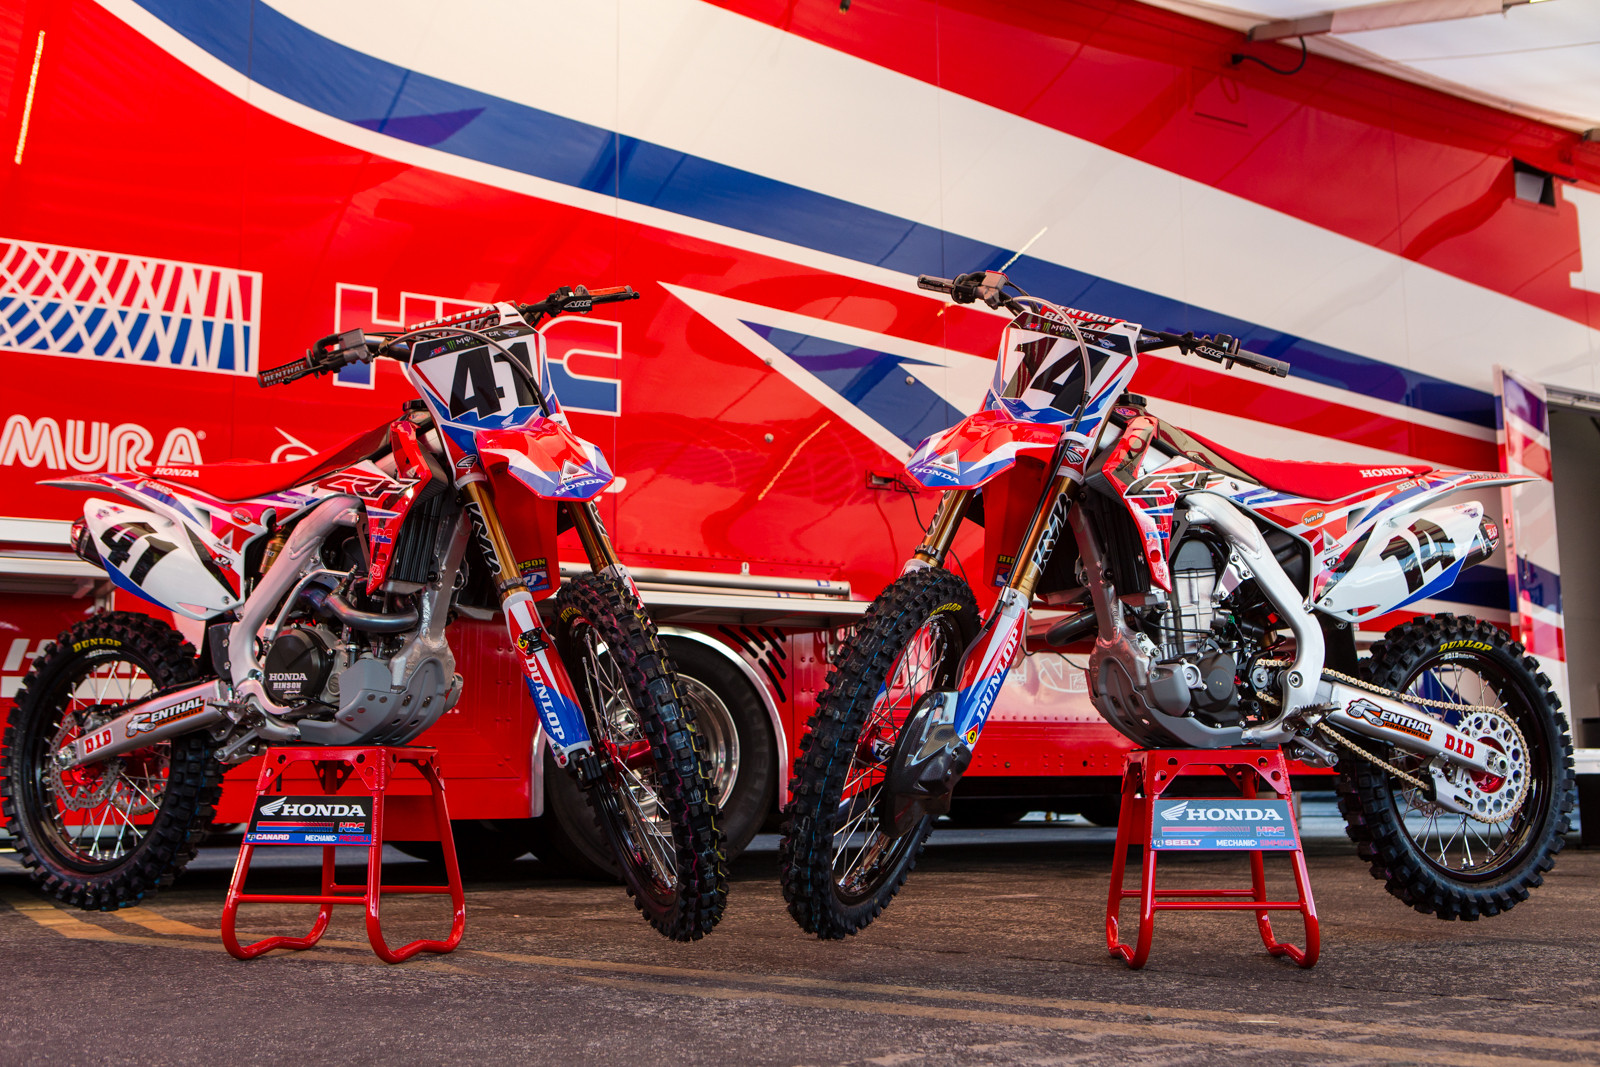 Trey Canard and Cole Seely - 2016 Bikes of Supercross - Motocross Pictures - Vital MX